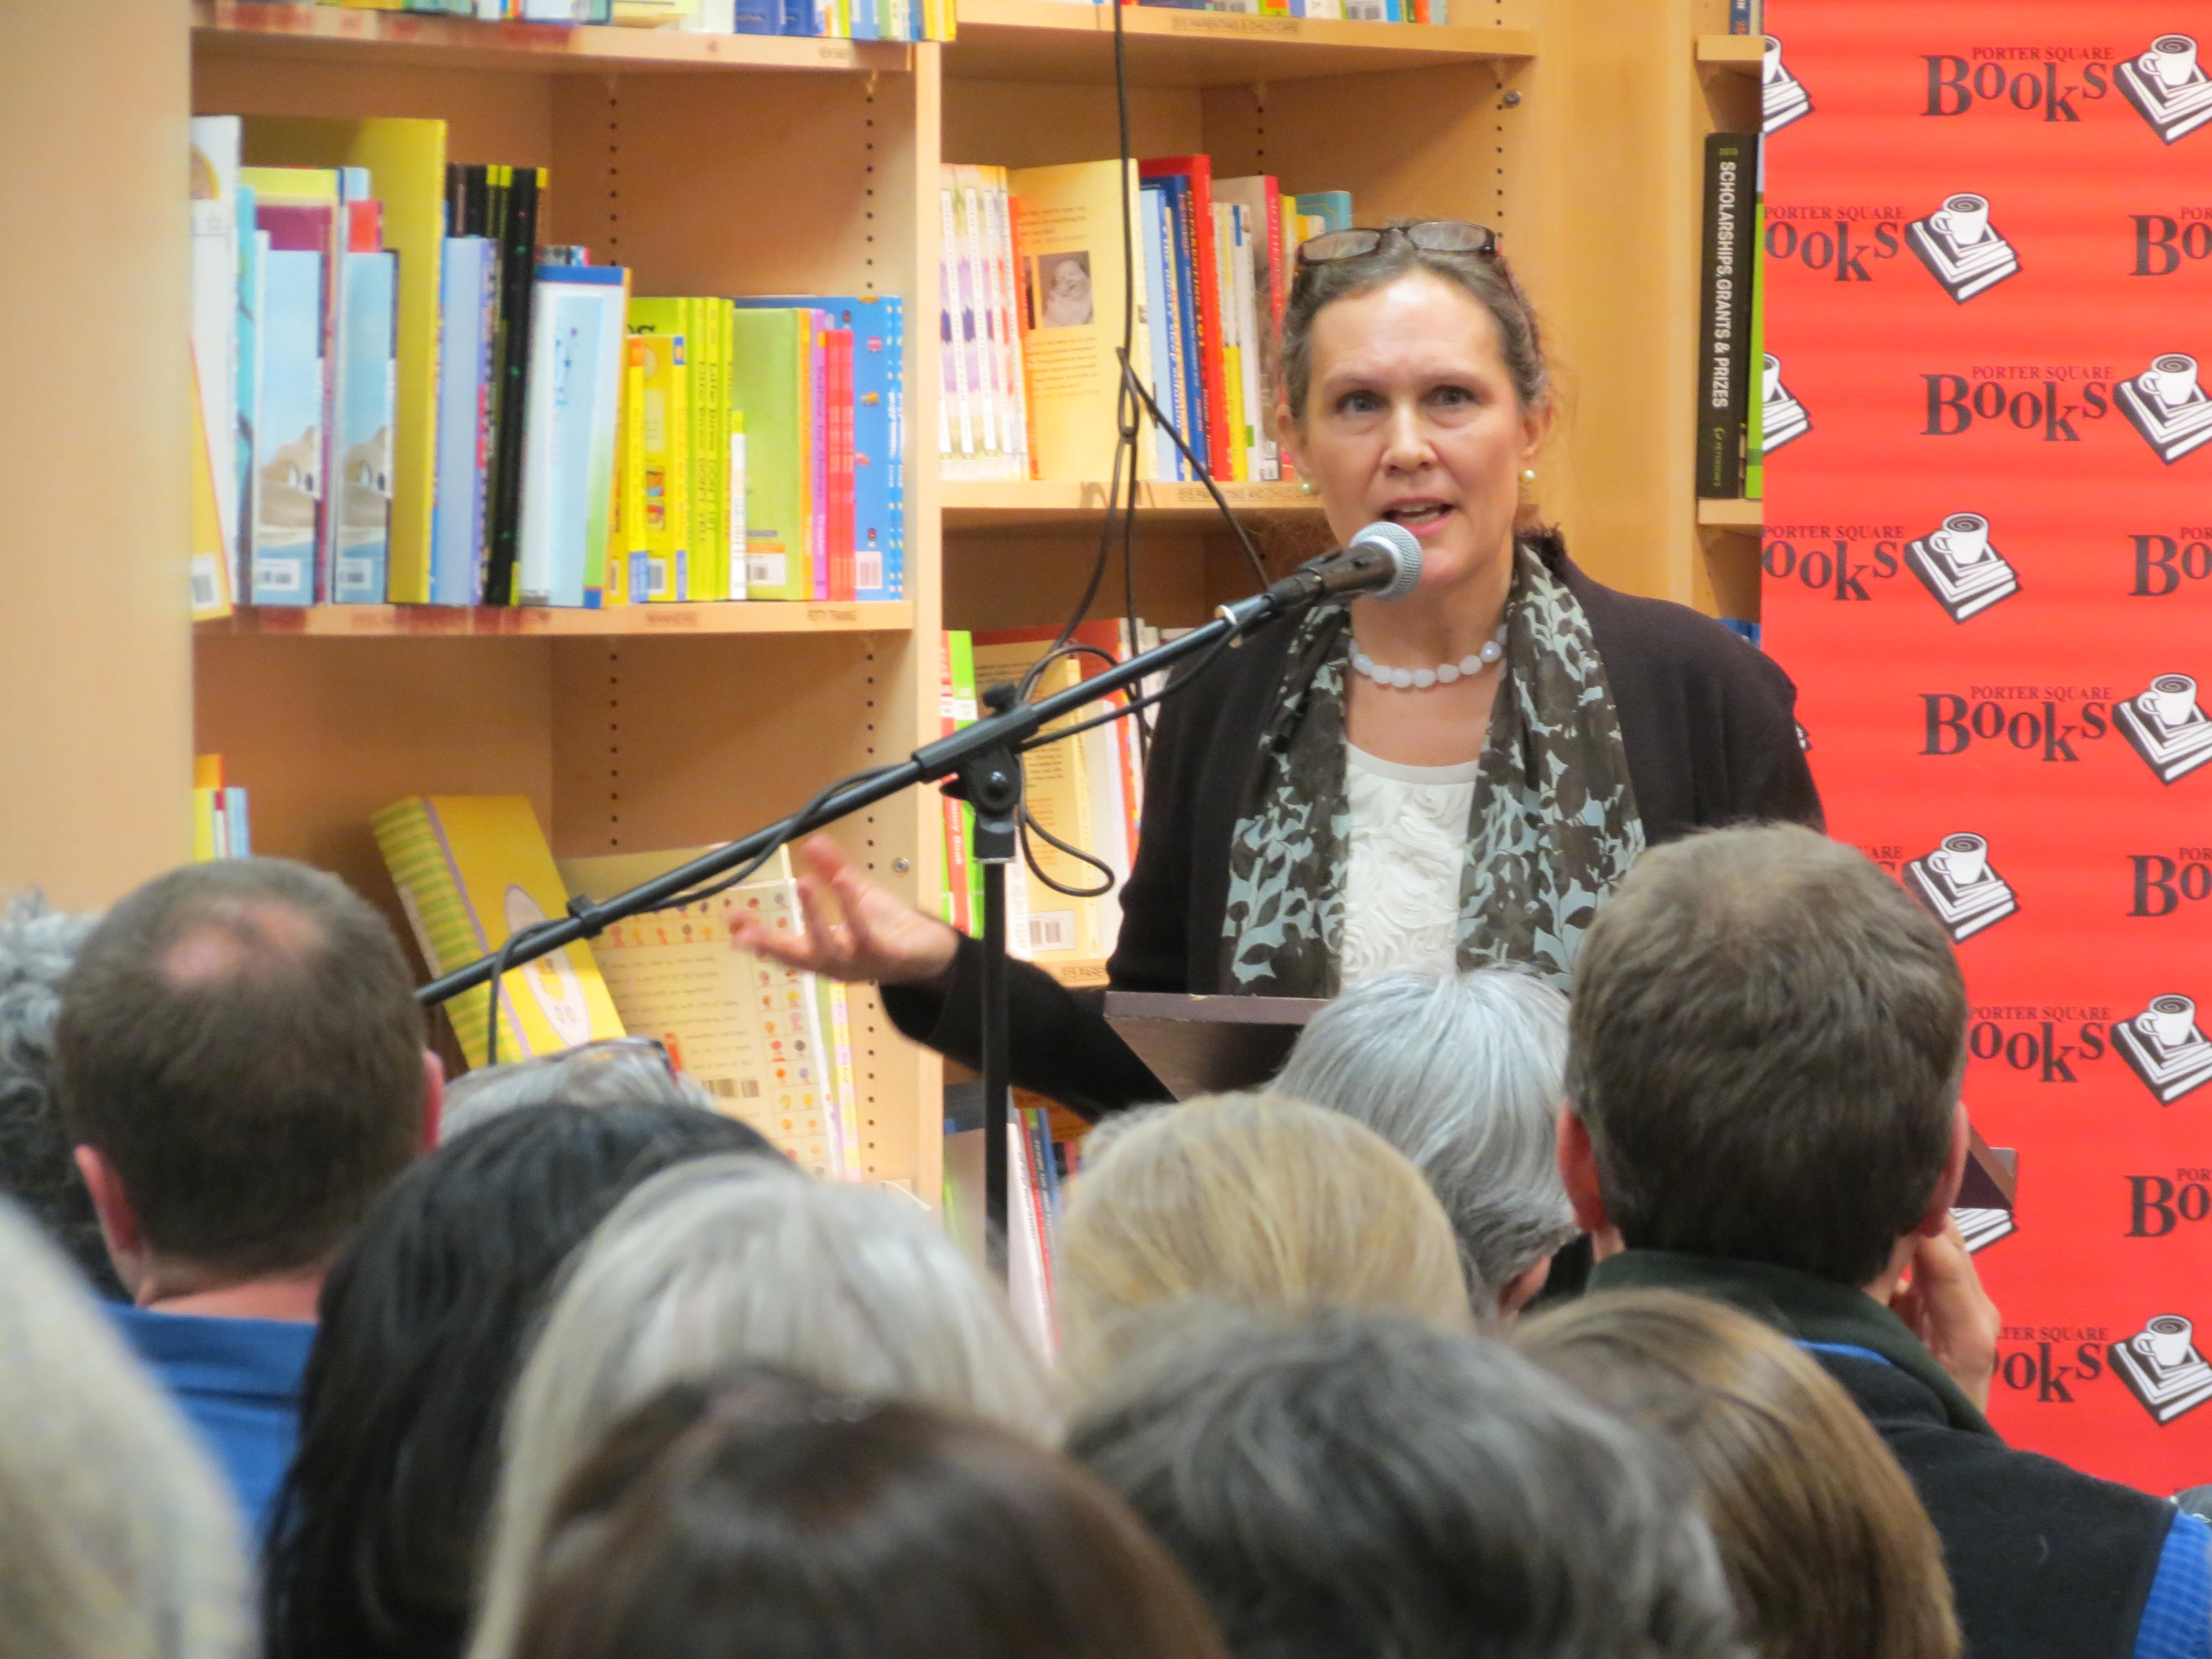 Debby speaking in front of crowd at bookstore